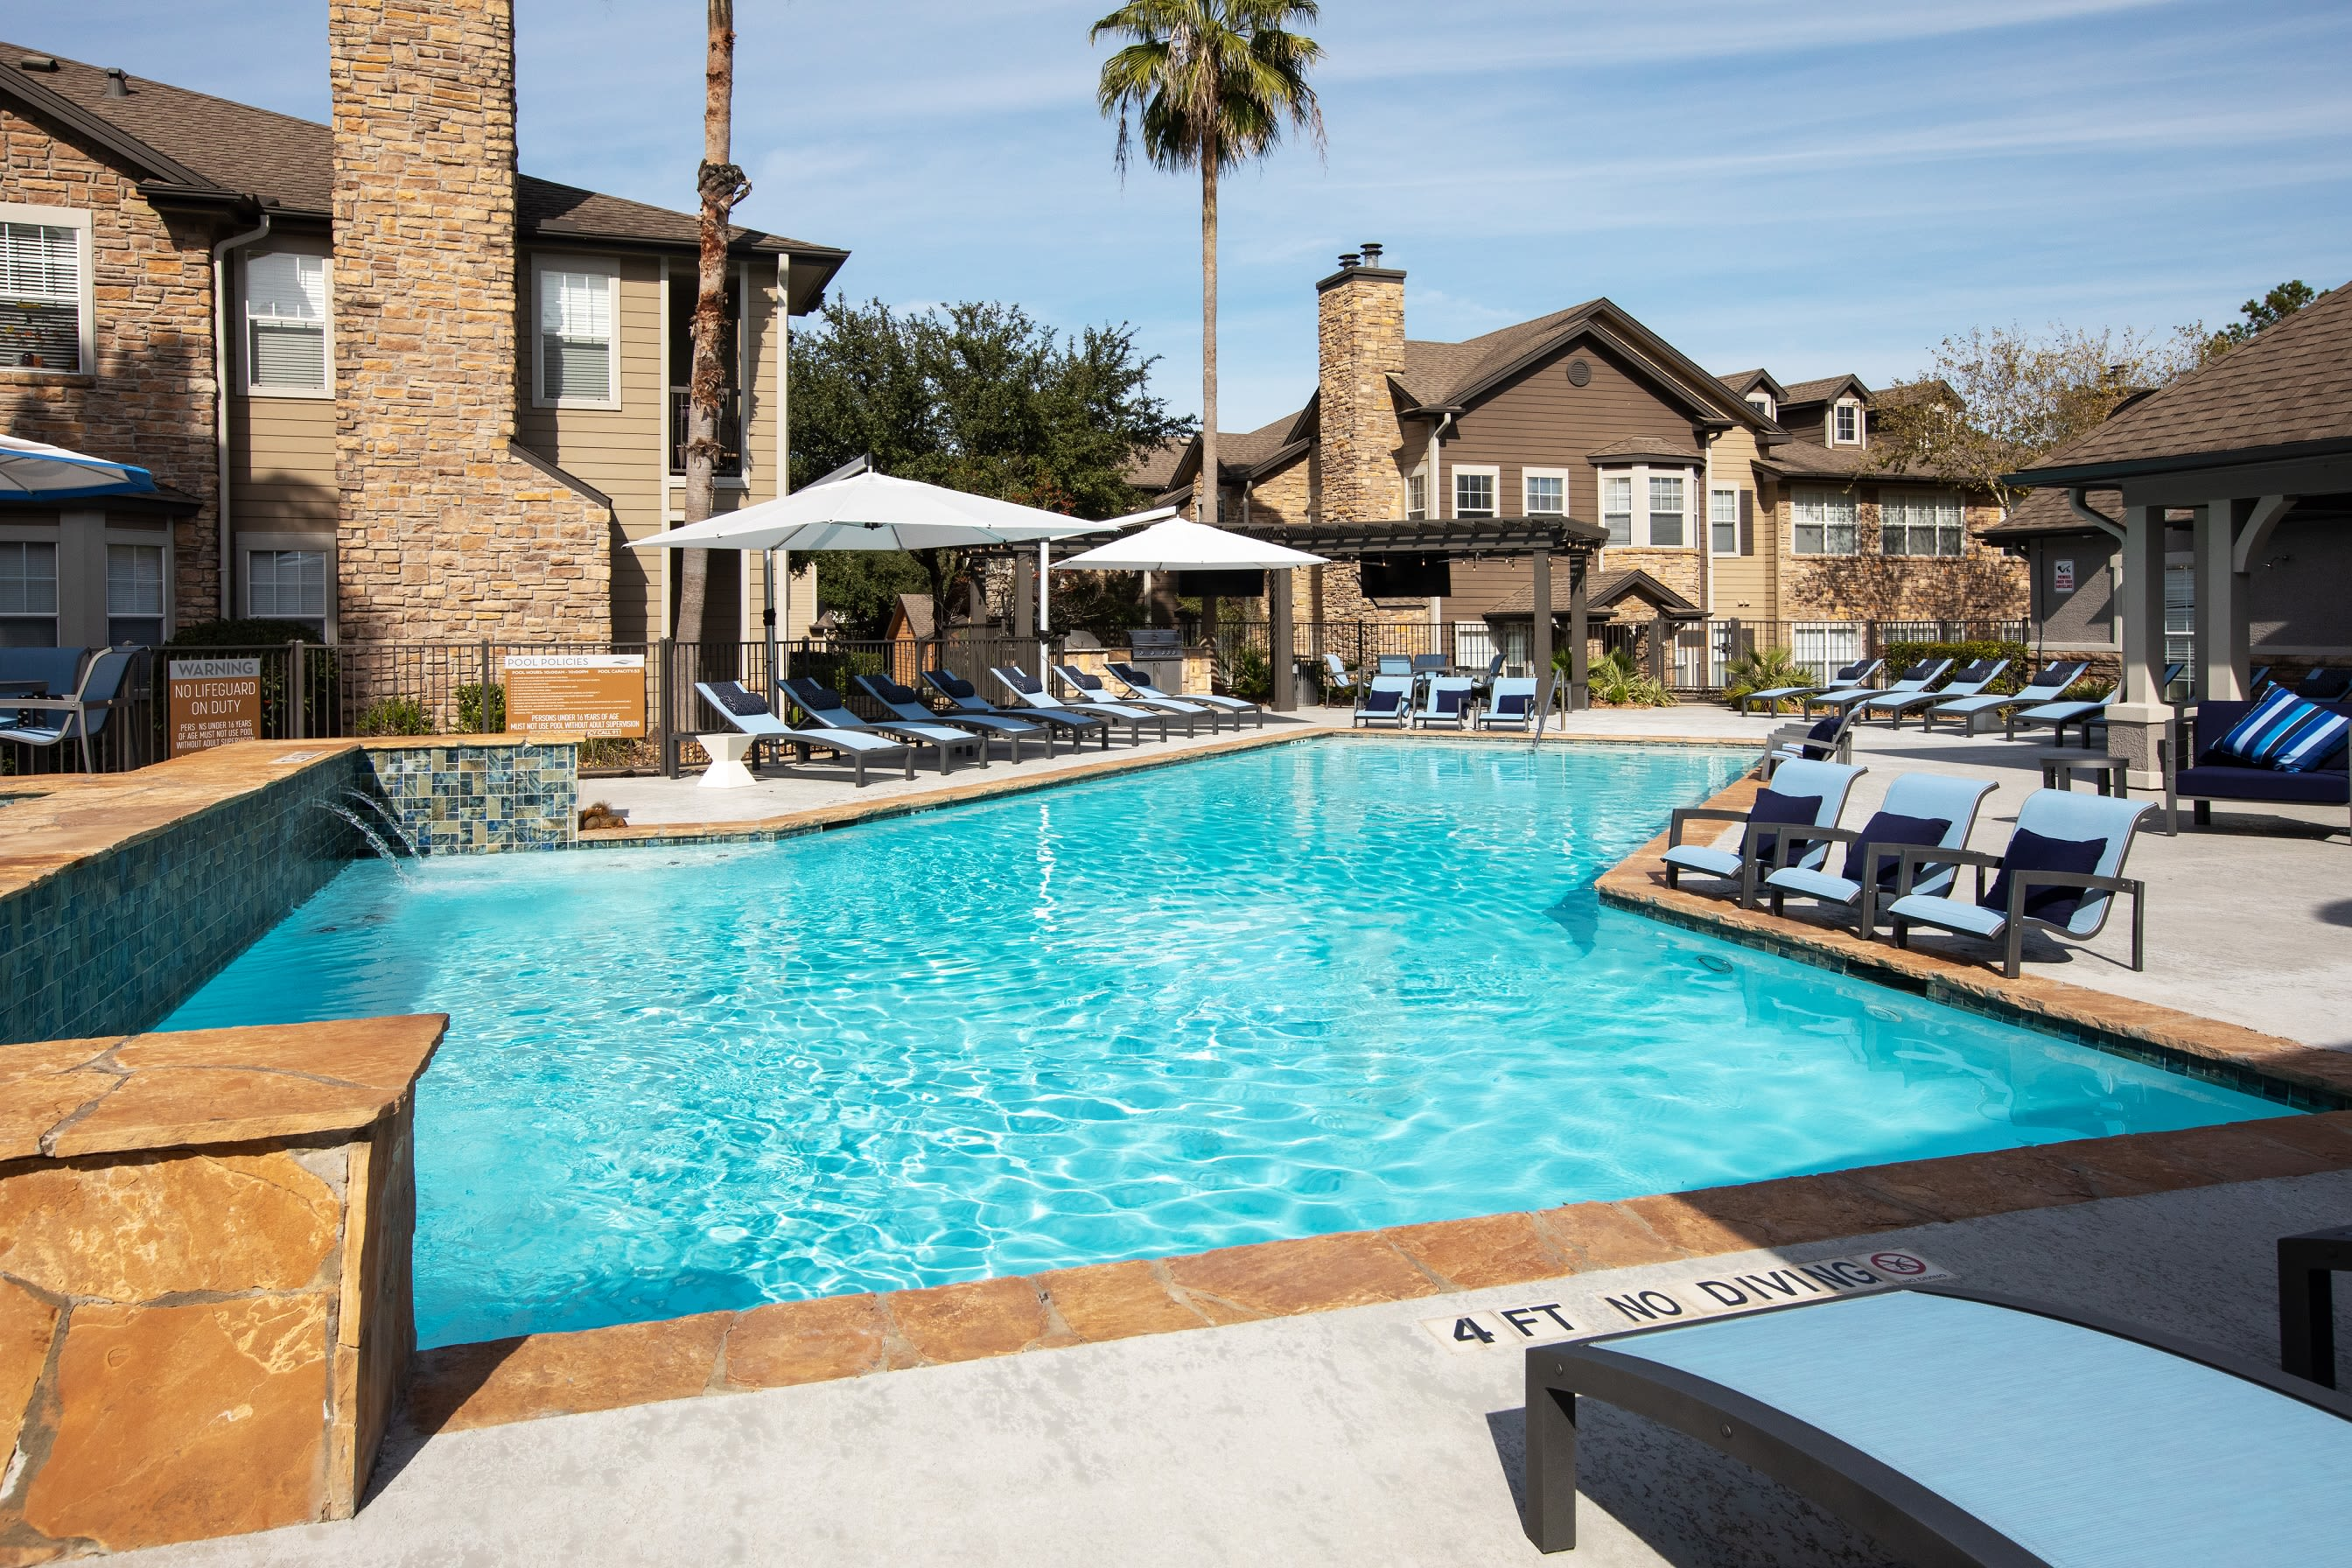 Large outdoor pool with lounge chairs and umbrellas at Artisan at Lake Wyndemere in The Woodlands, Texas